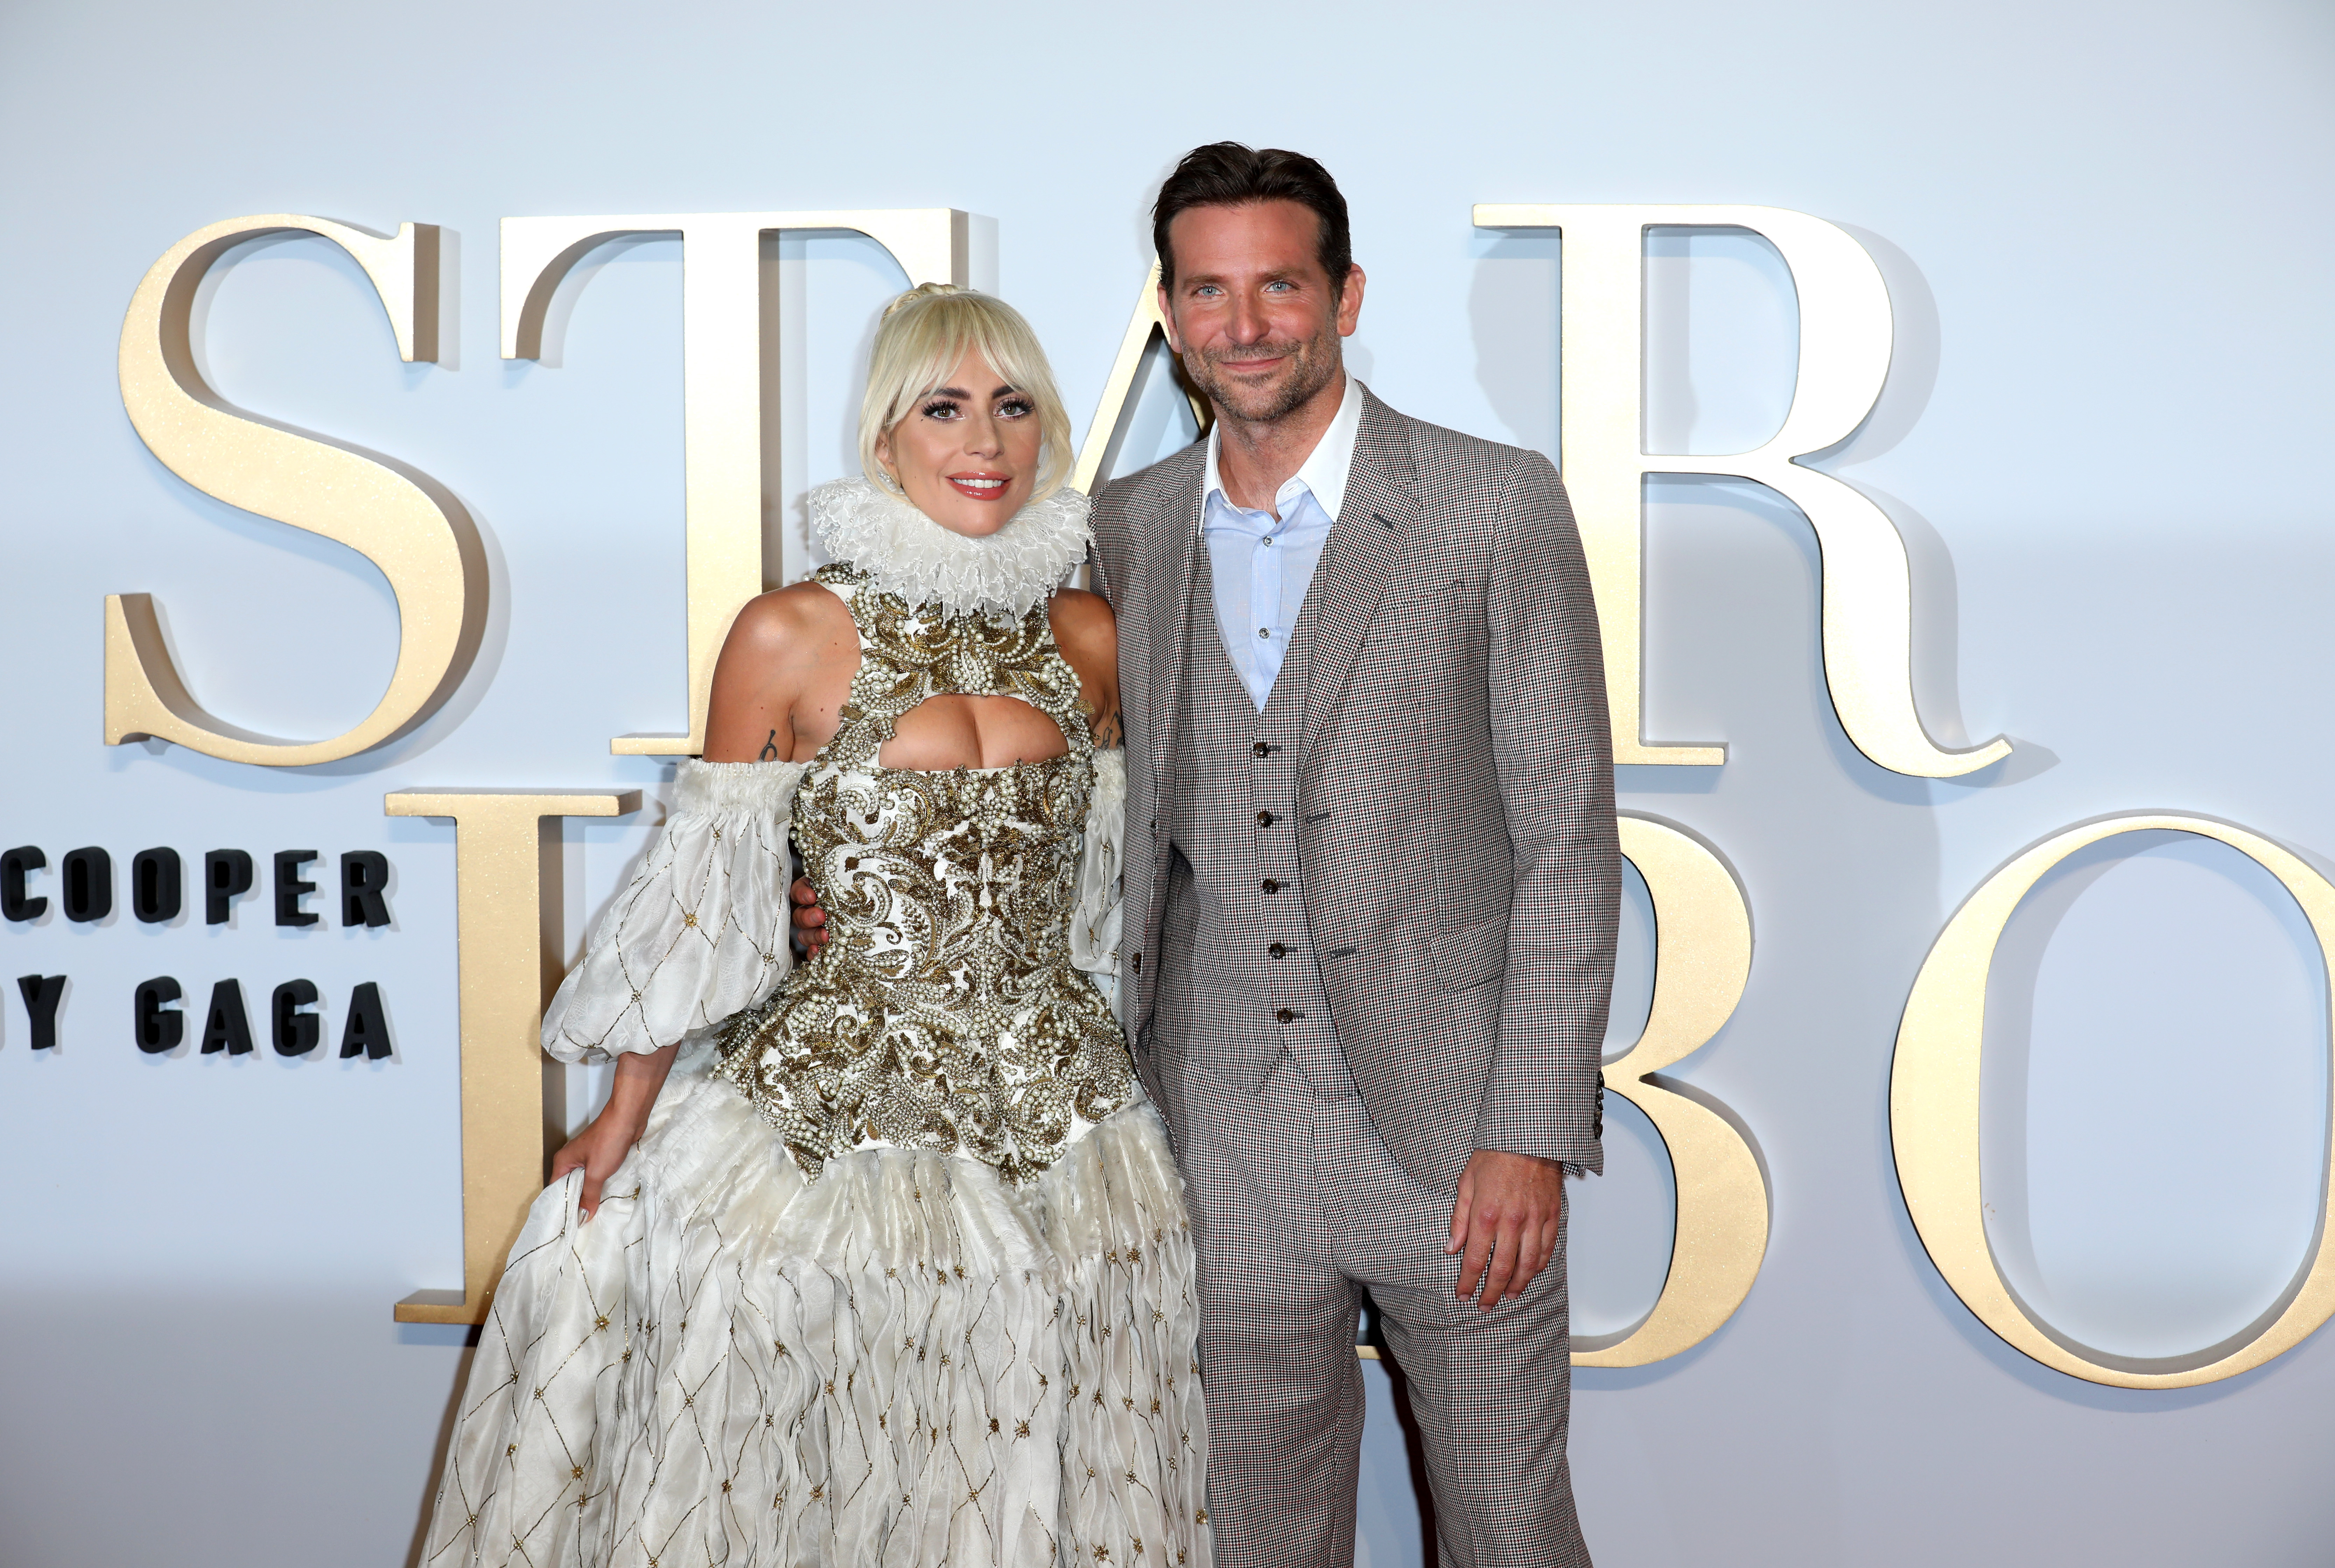 Lady Gaga and Bradley Cooper attend the UK premiere of 'A Star Is Born' held at Vue West End on September 27, 2018 in London, England. (Photo by Tim P. Whitby/Getty Images)